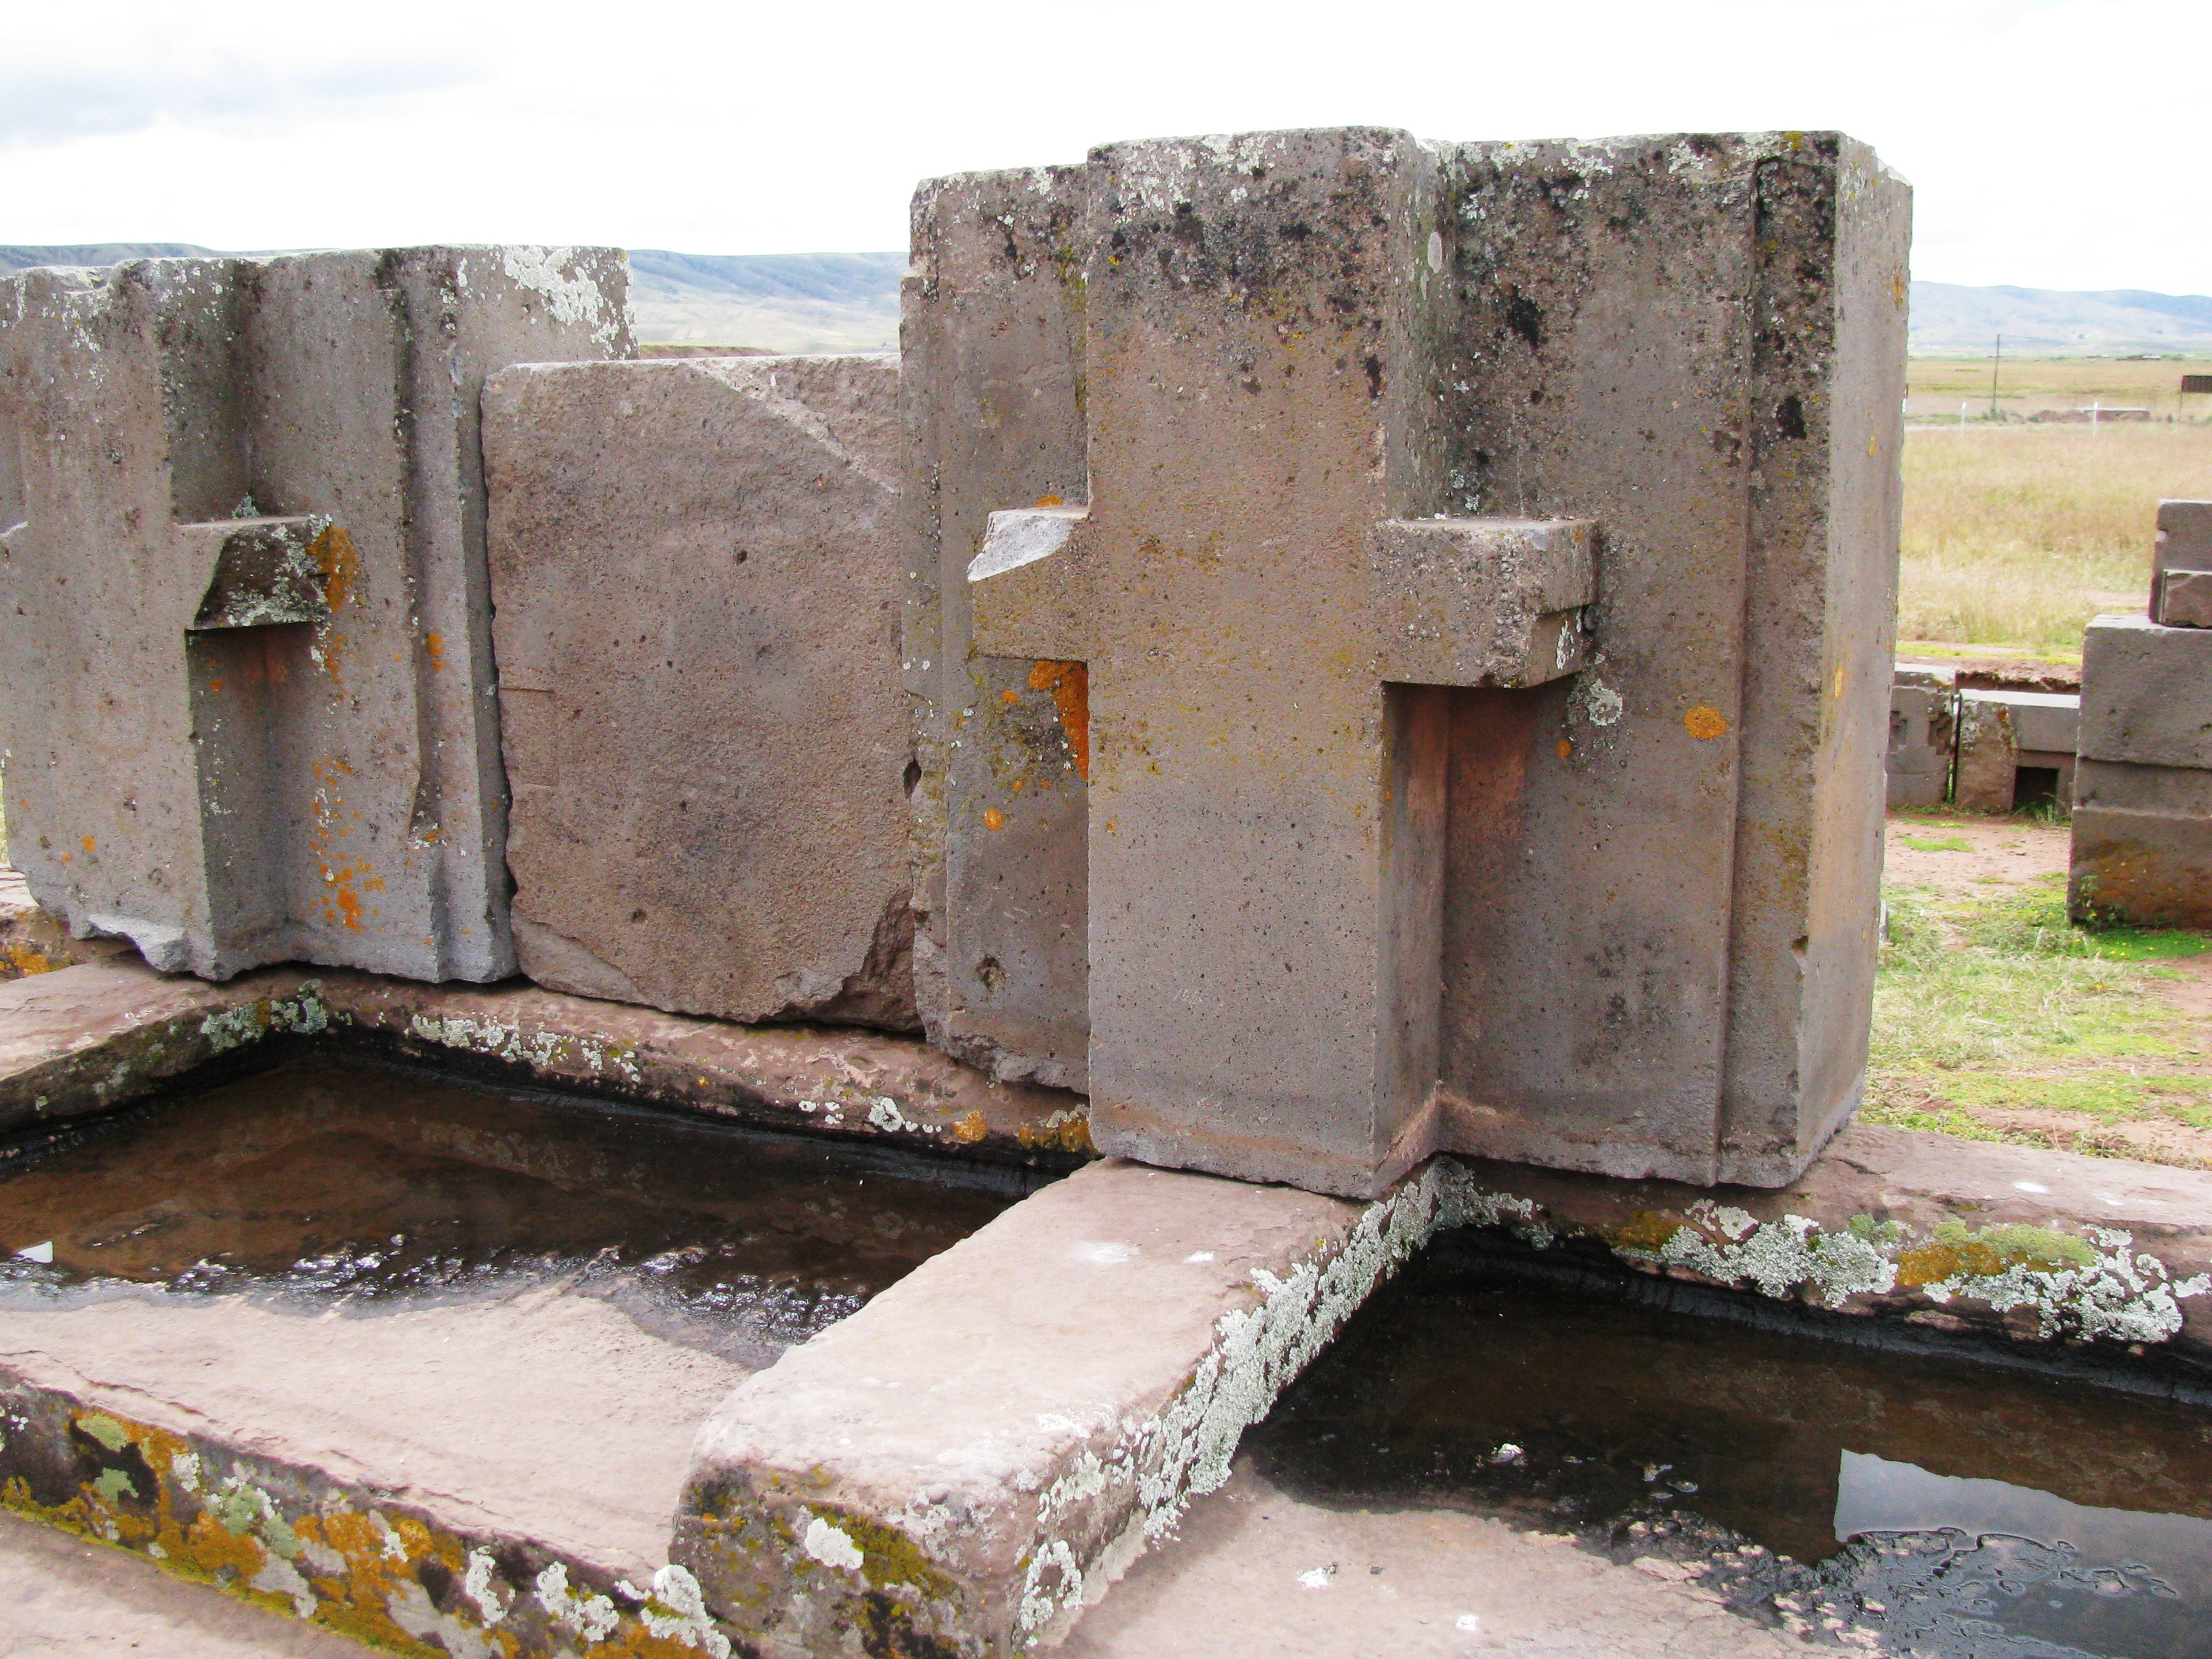 dating puma punku A new form of dating is currently being completed at puma punku using a new  technology called cosmogenic dating to date when the stone.